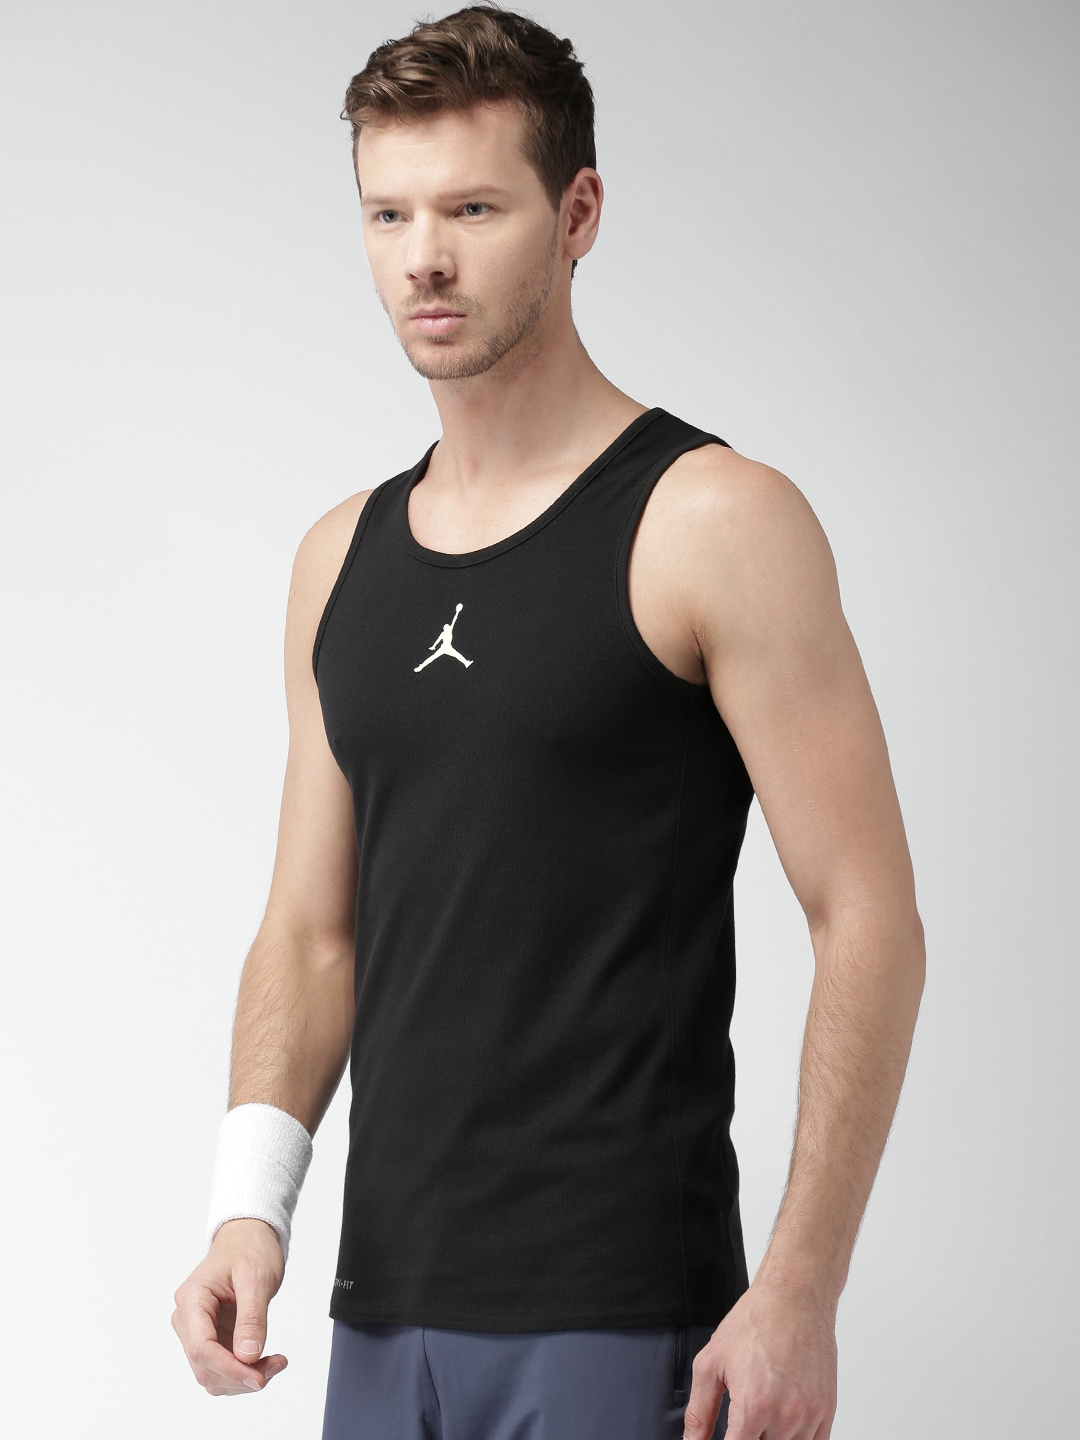 Men's Sleeveless T-Shirts - Buy Sleeveless T-Shirts For Men Online